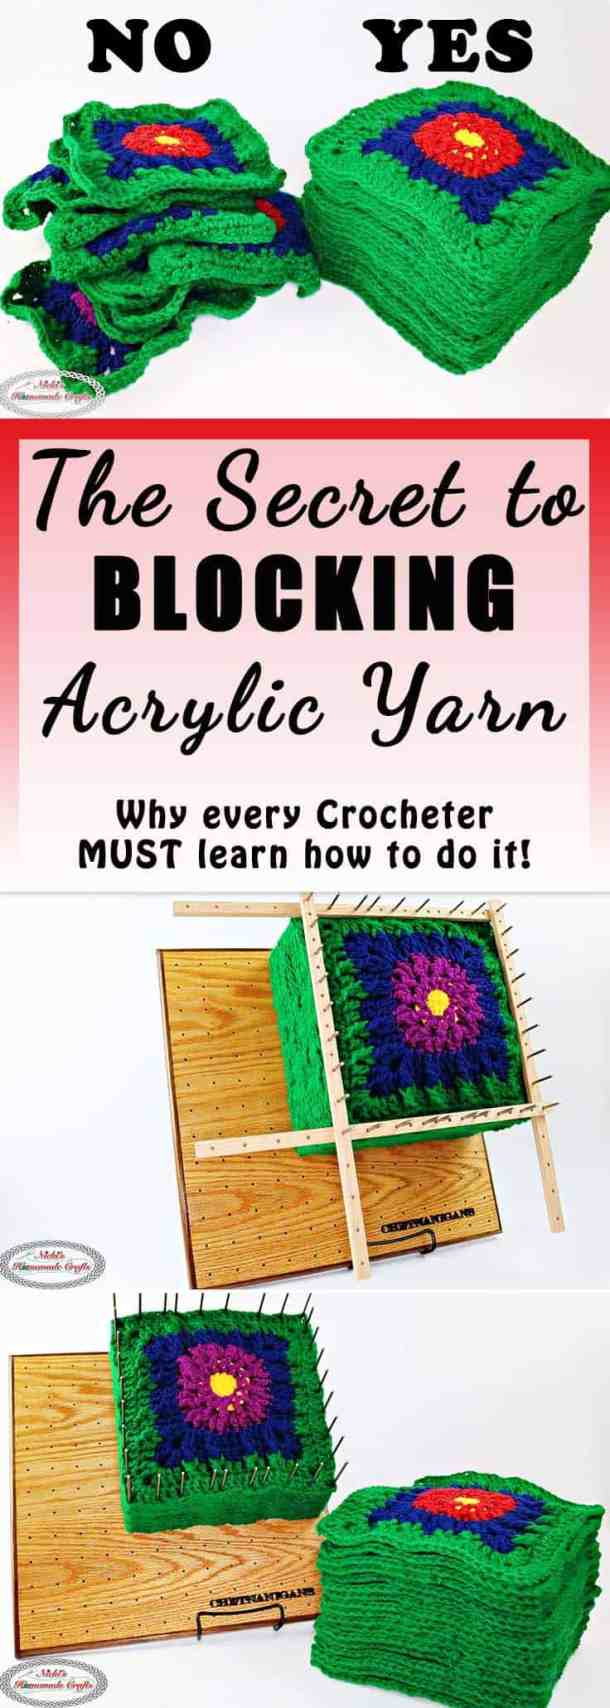 Learn the SECRET to Blocking Acrylic Yarn with Steam and Block Board - DIY Crochet and Knitting Tutorial by Nicki's Homemade Crafts - blankets, granny square, block, yarn, blocking, blocking board, review, chetnanigans, handmade, easy, steamer, avoid, make, successful, right, wrong